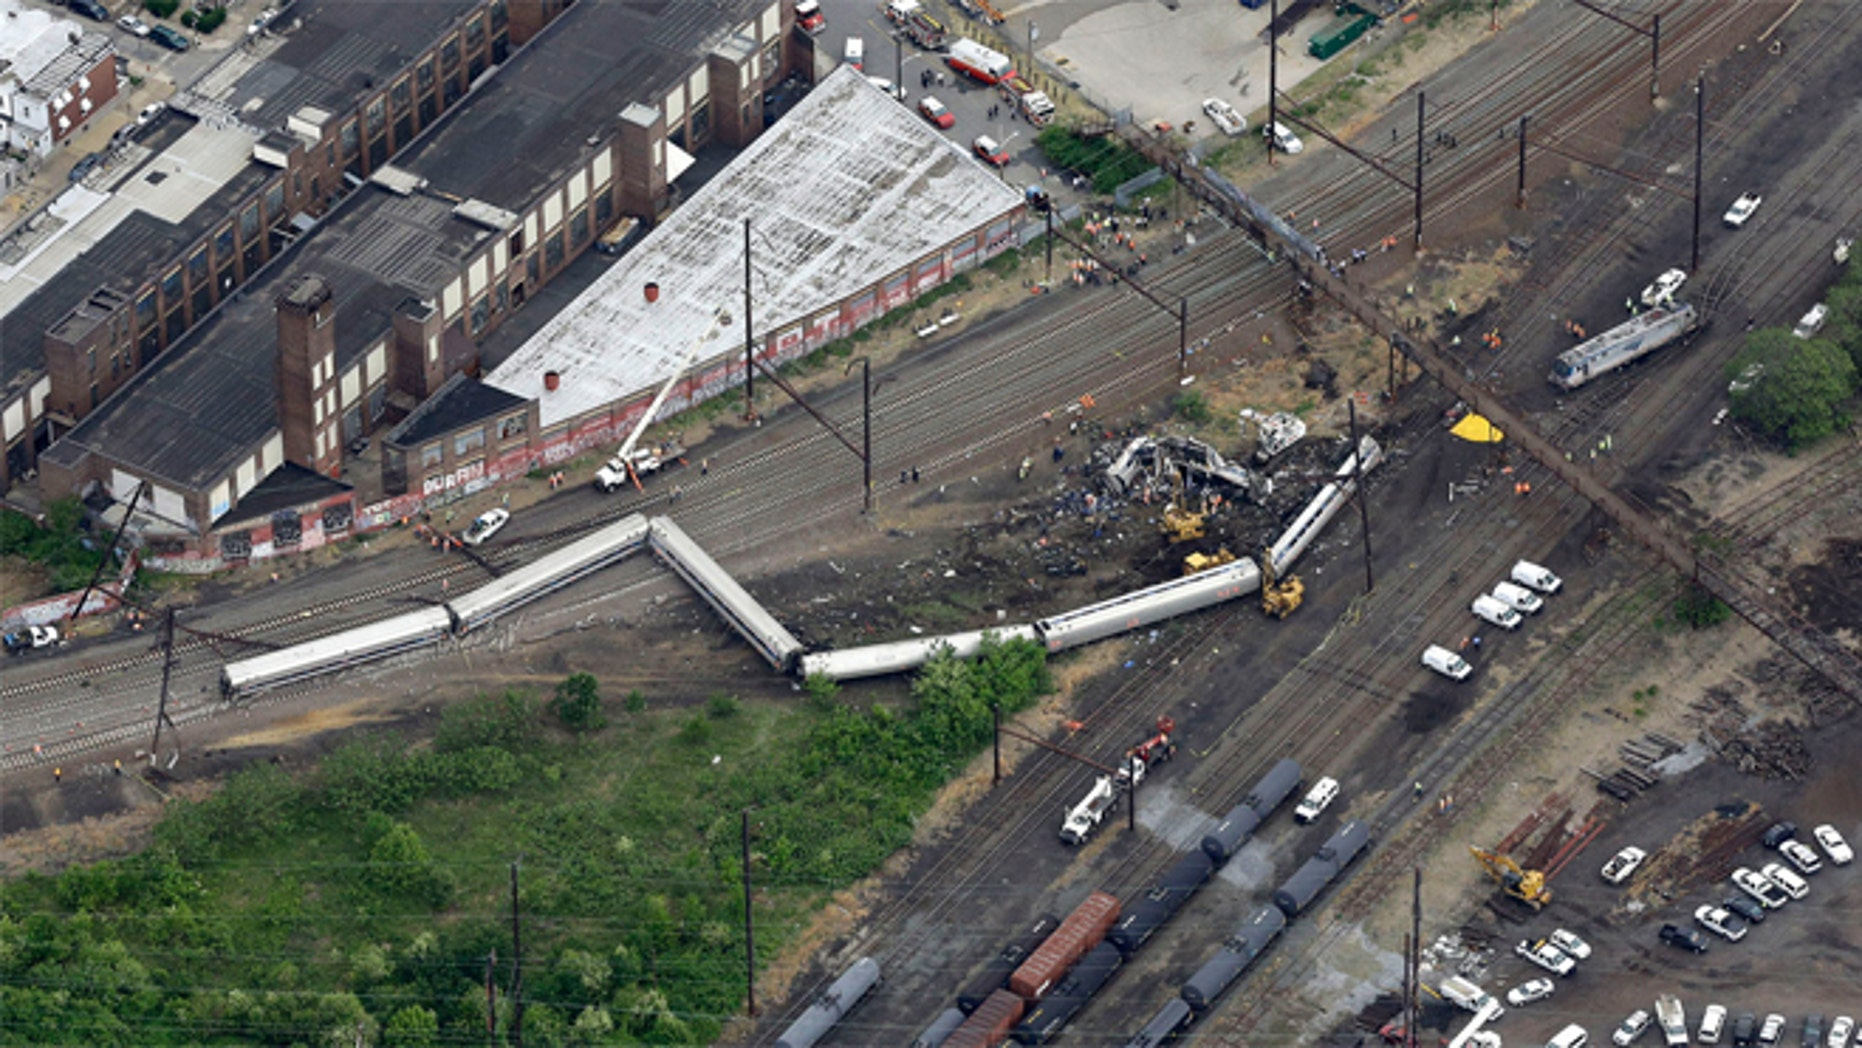 Amtrak Northeast Regional train 188, which was traveling from D.C. to New York, derailed on May 13.